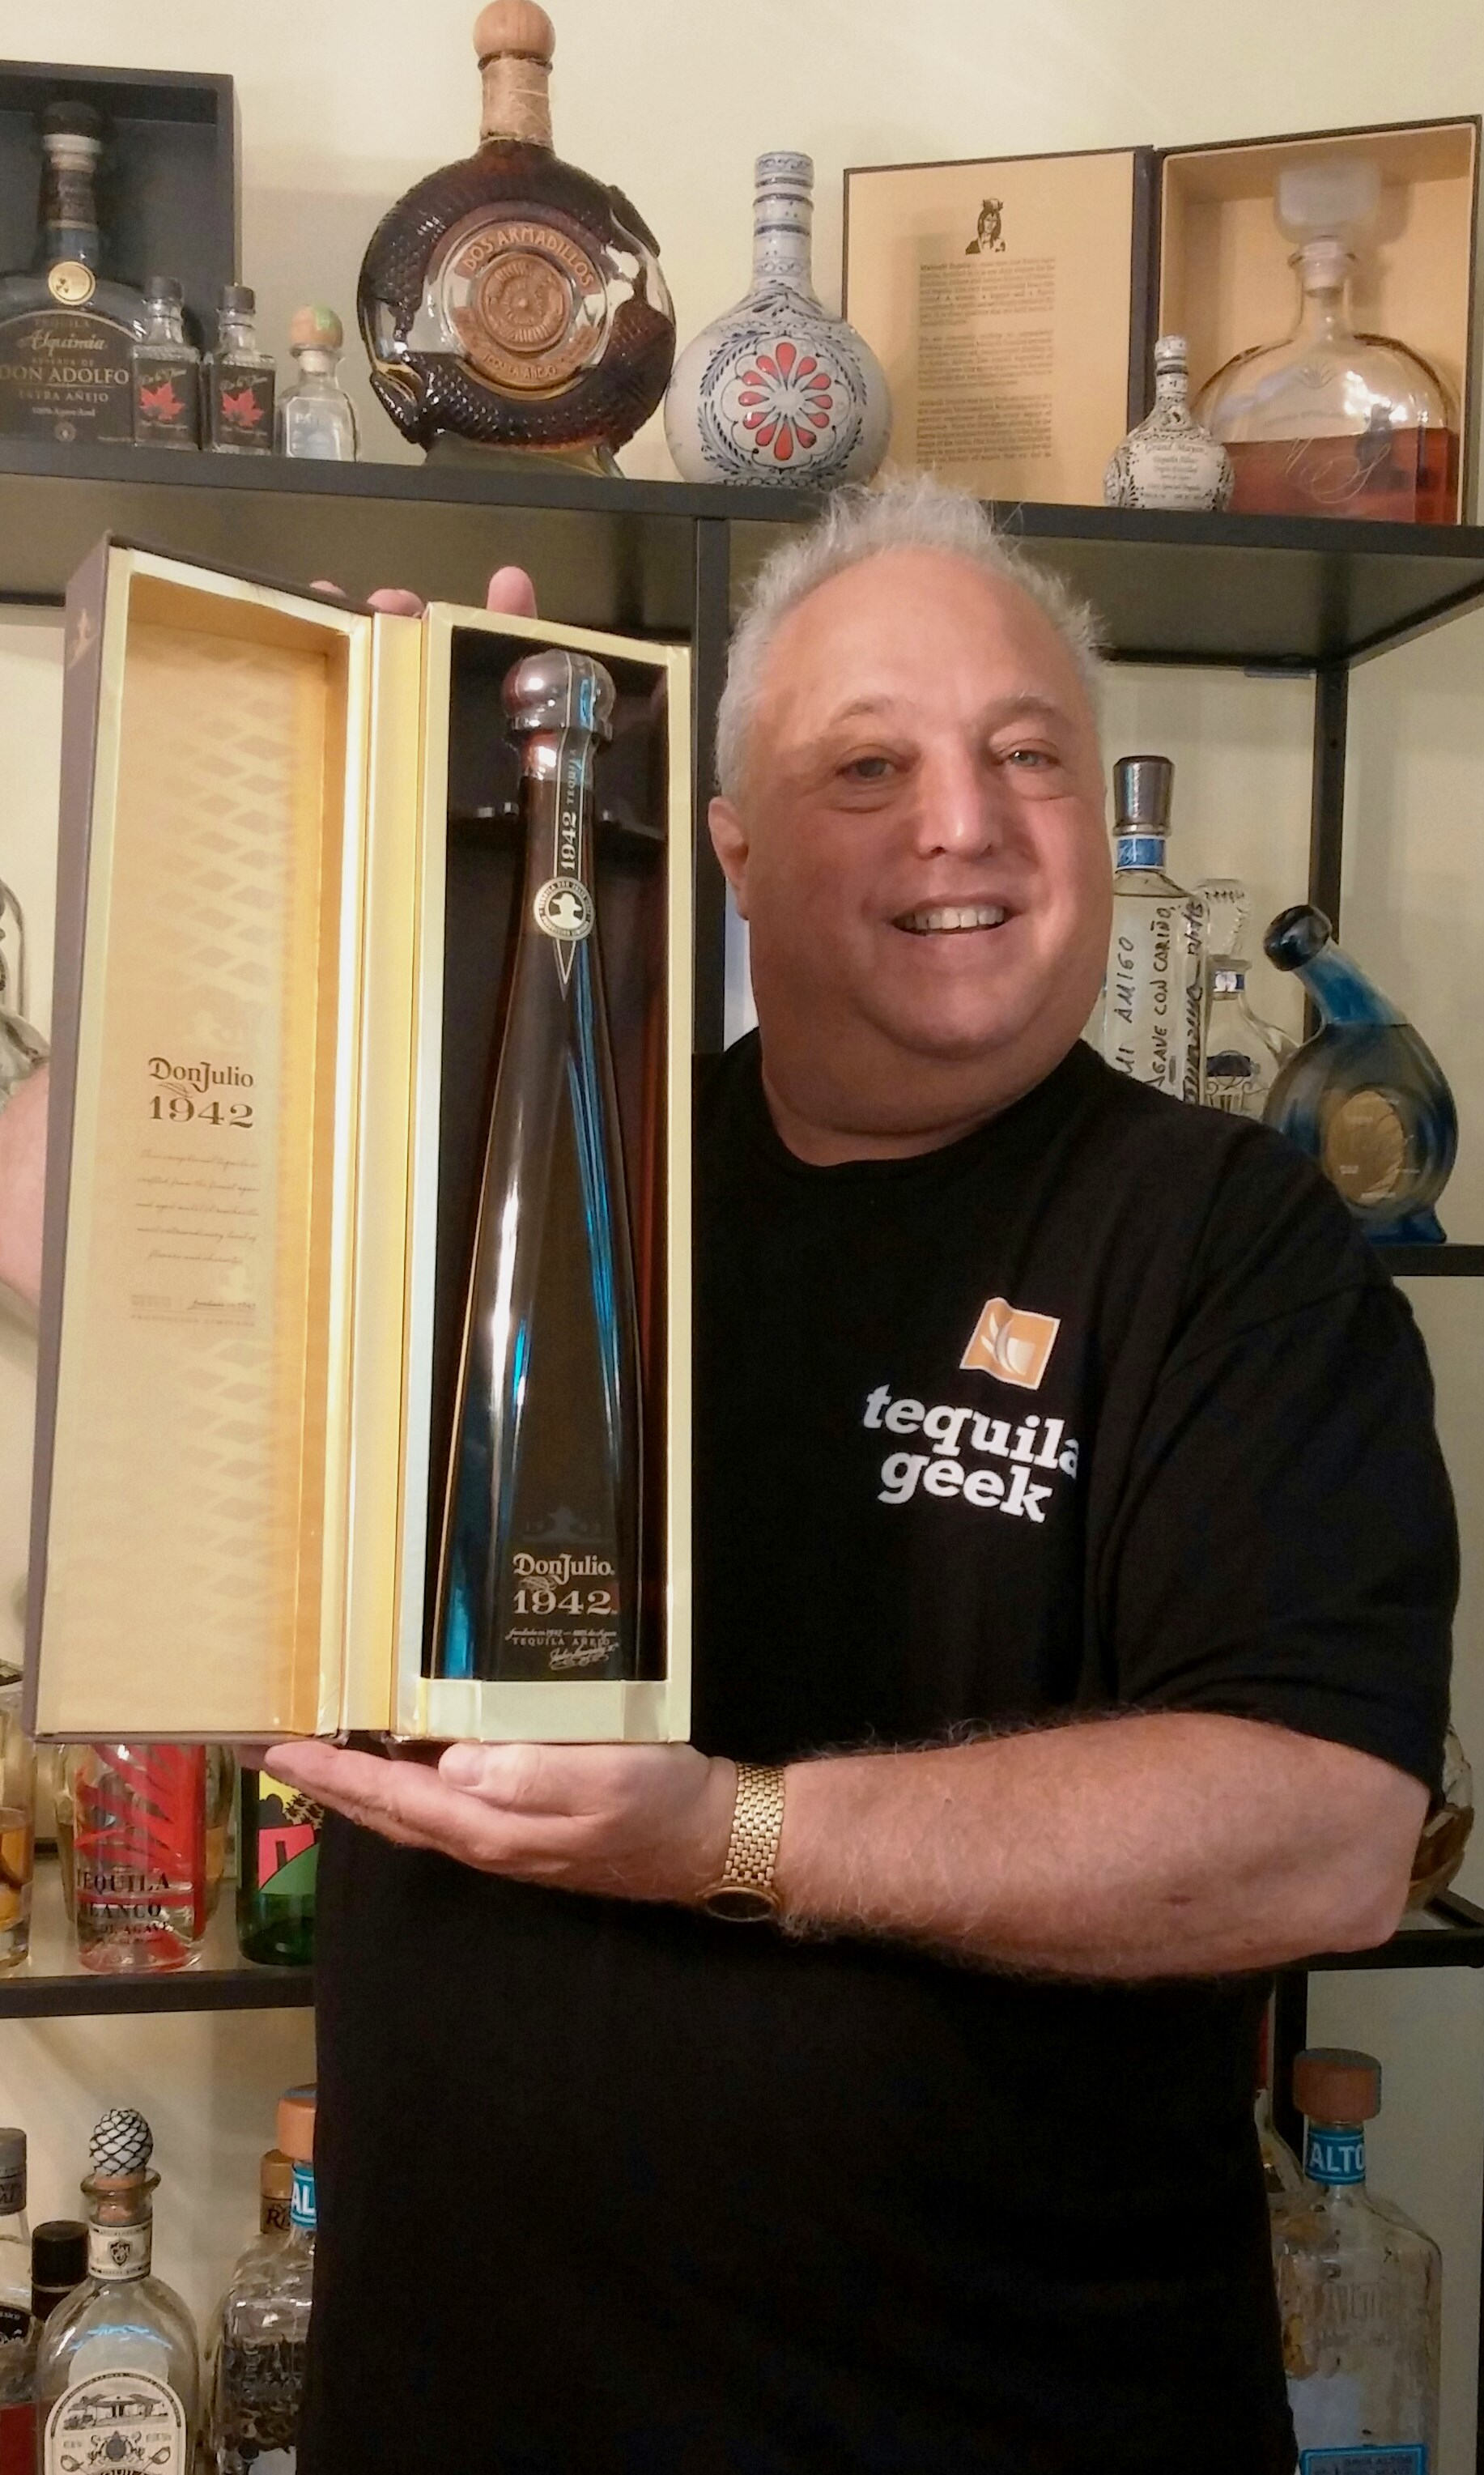 DON JULIO 1942 AÑEJO.... WORTH THE PRICE?